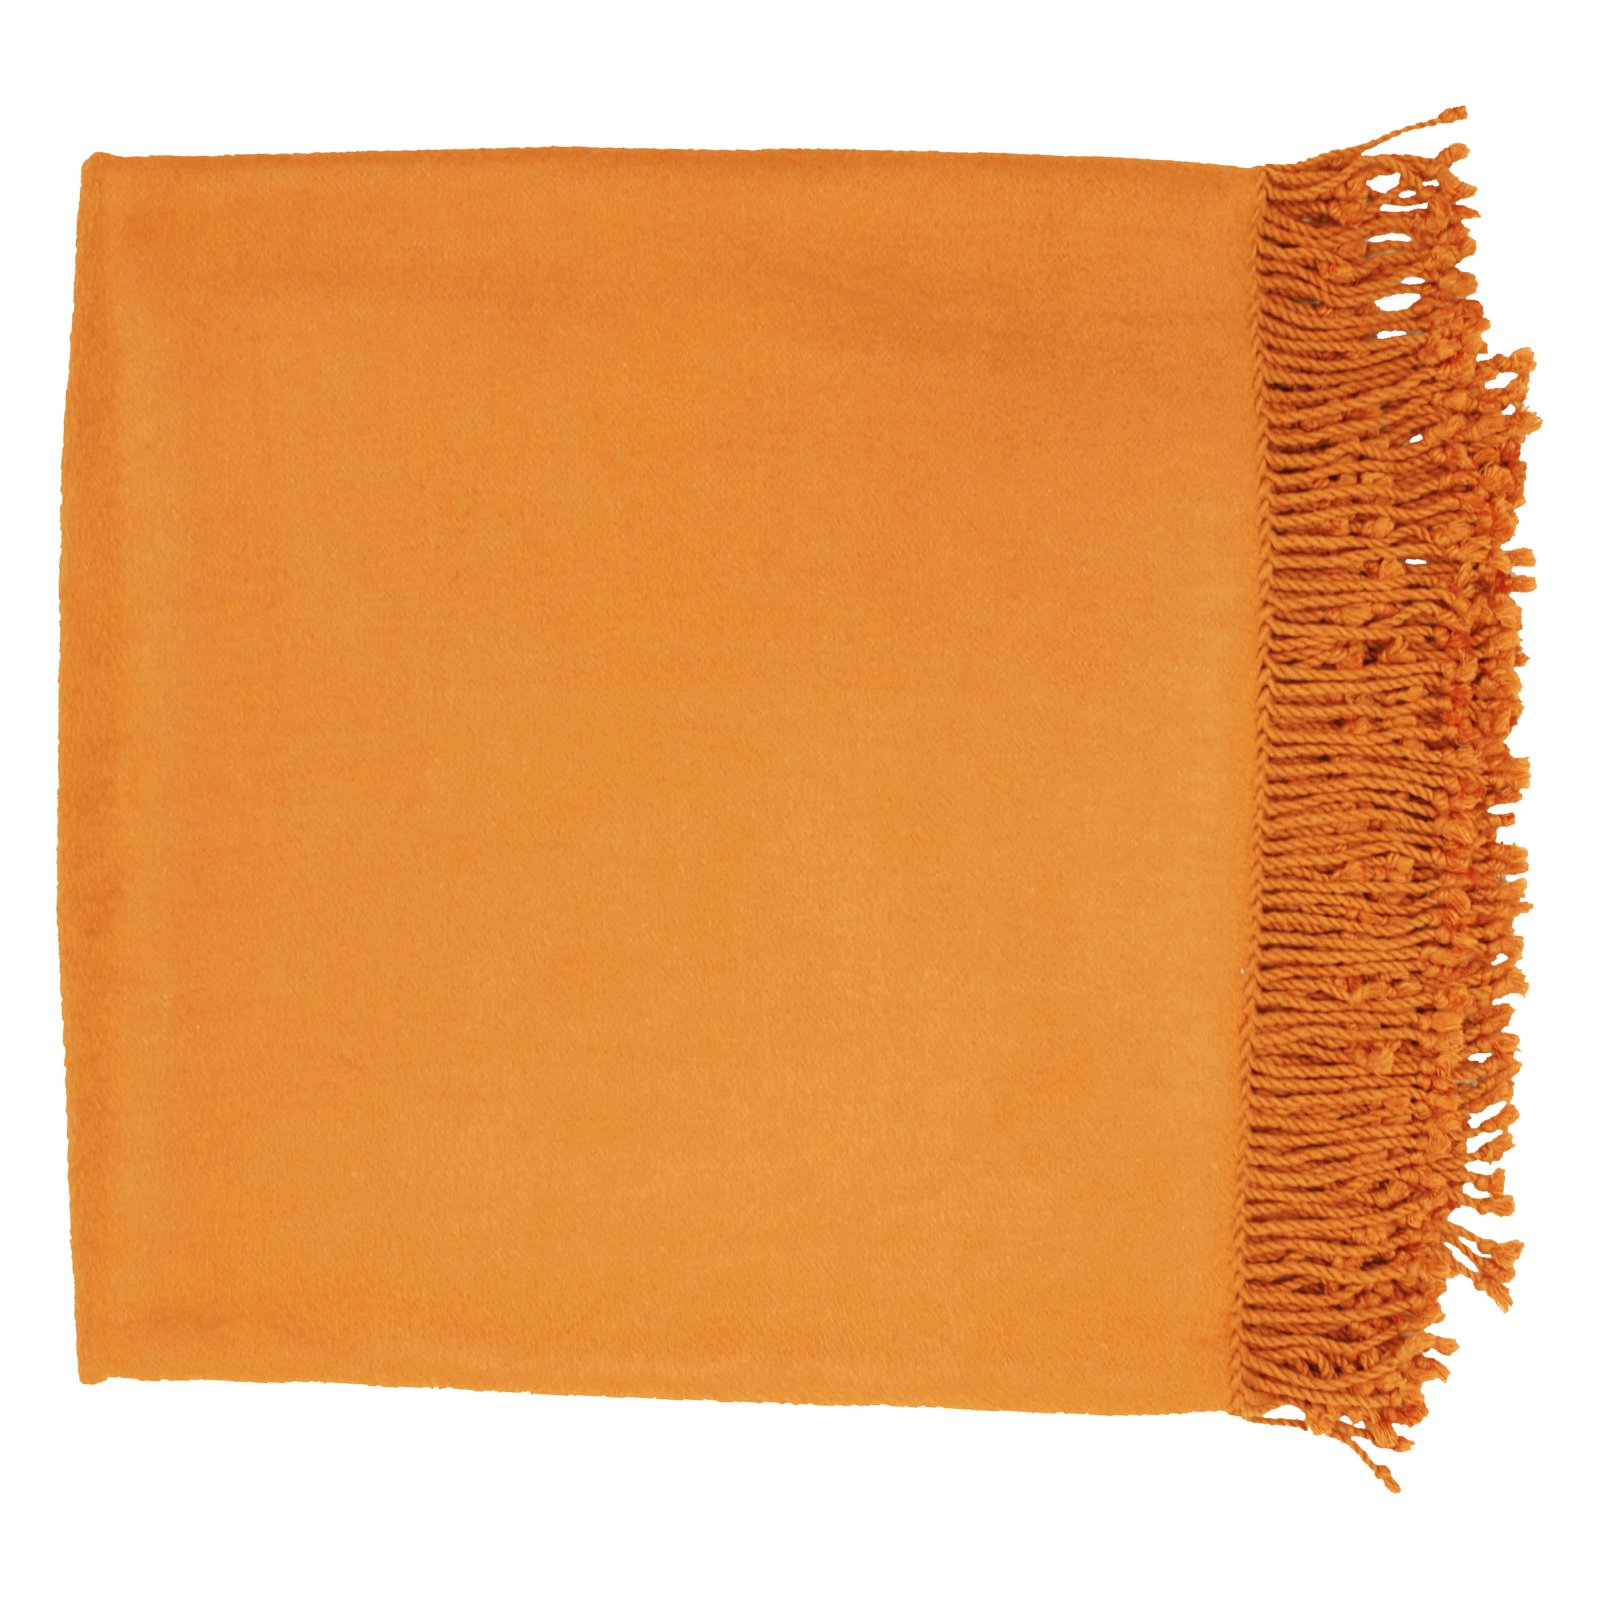 Surya Tian Tian Throw Blanket